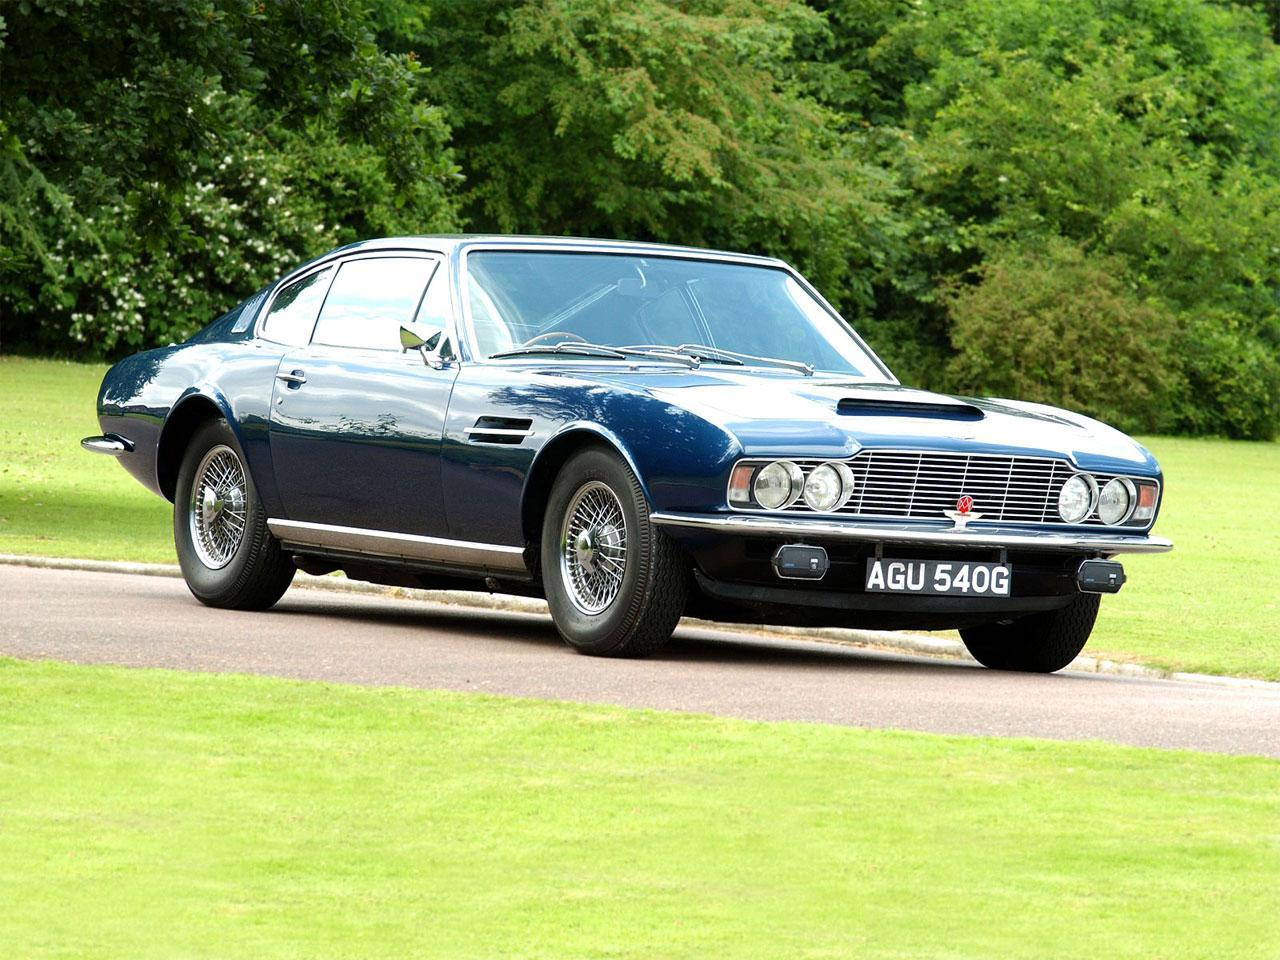 Aston Martin DBS photo 32707